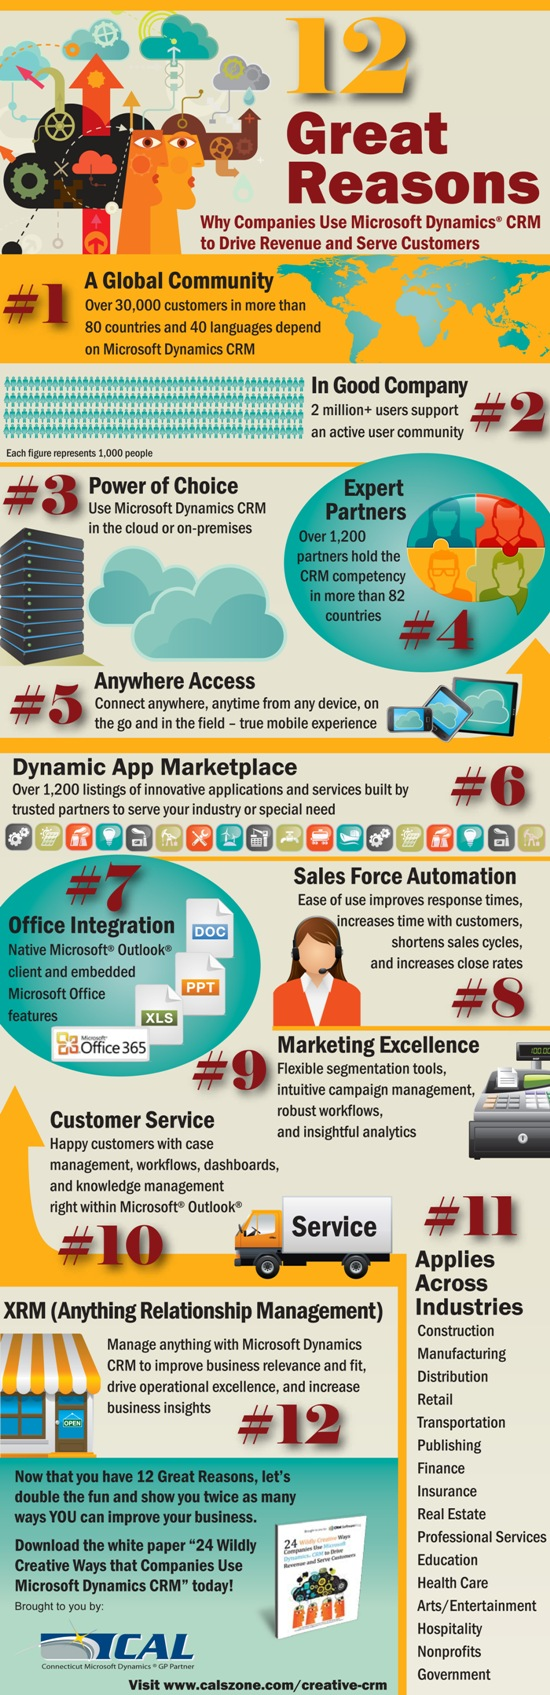 INFOGRAPHIC: 12 Great Reasons Companies Use Microsoft Dynamics CRM